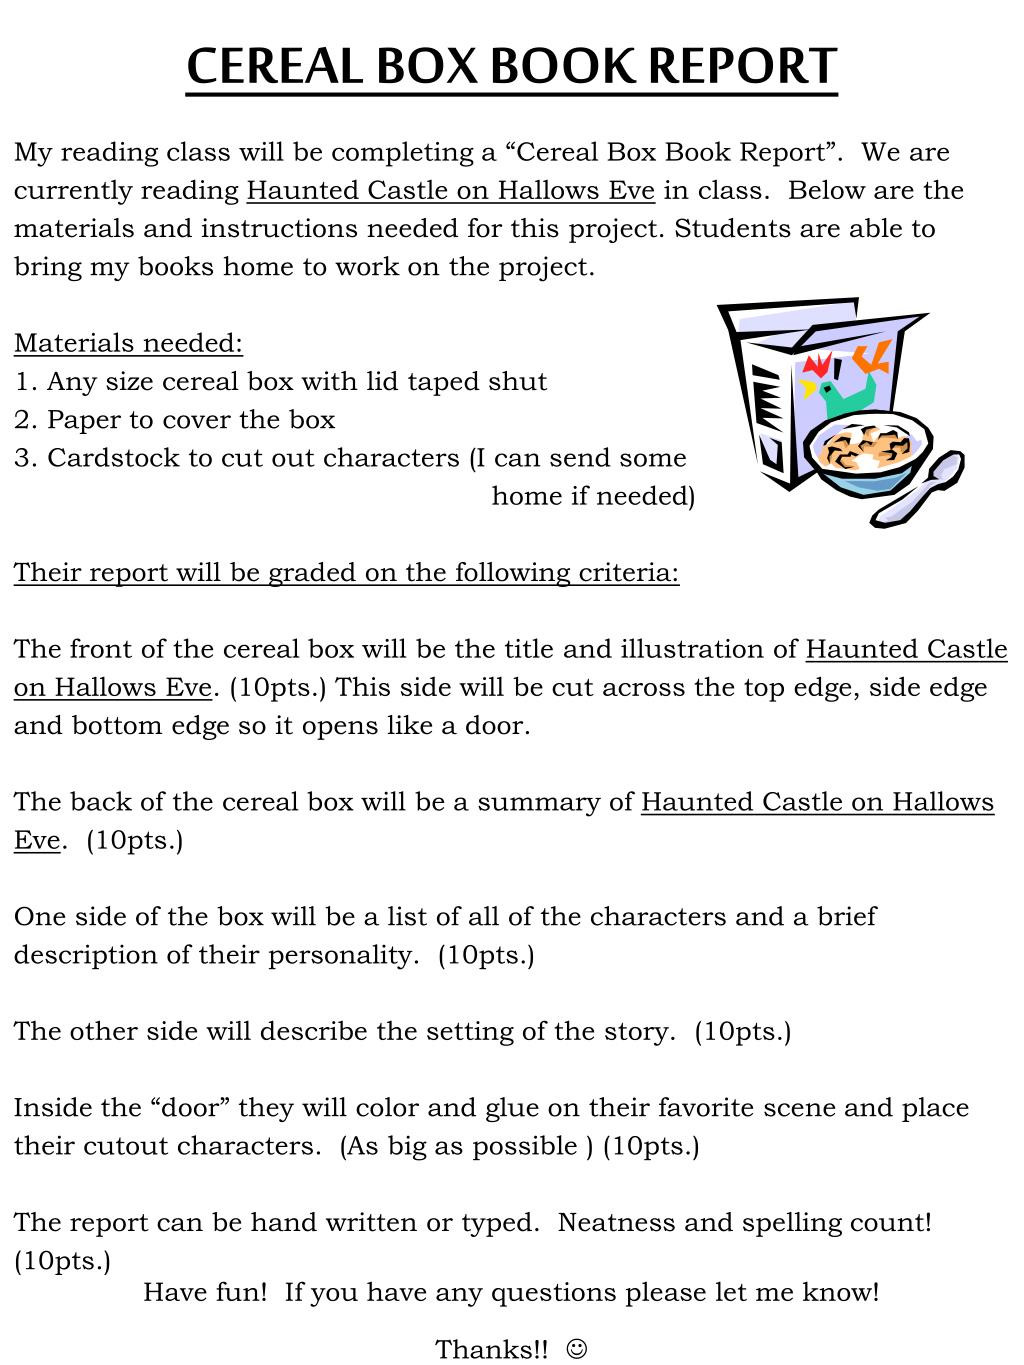 Cereal Box Project Template